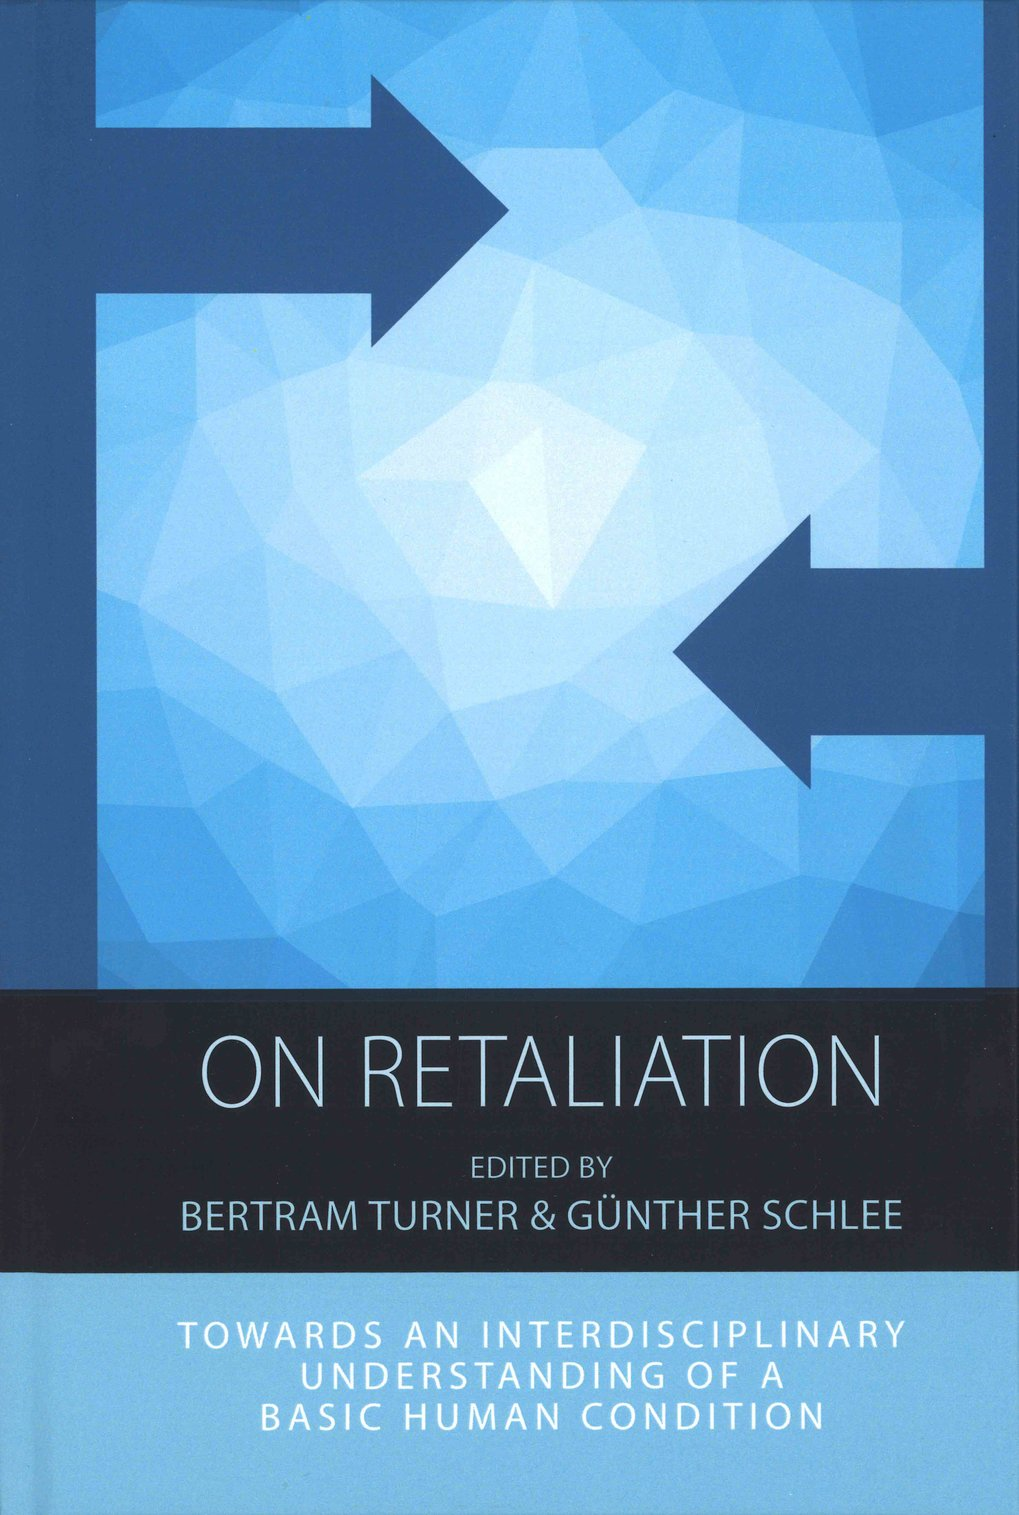 On Retaliation. Towards an Interdisciplinary Understanding of a Basic Human Condition<br /><br />